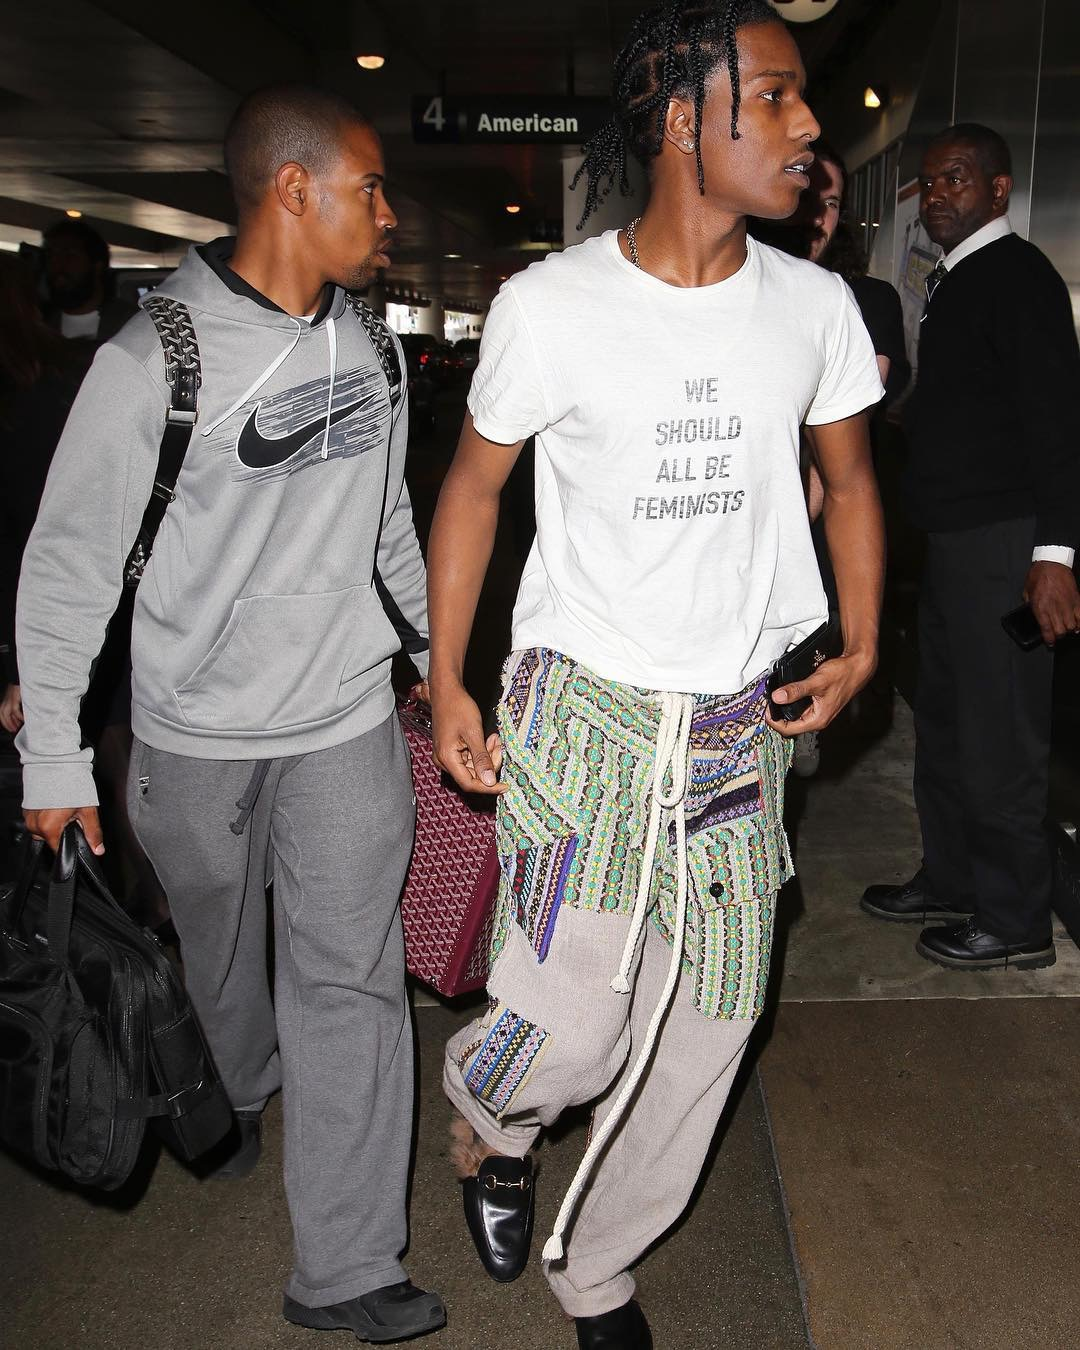 SPOTTED: A$AP Rocky in Dior, Loewe and Gucci Slippers at LAX